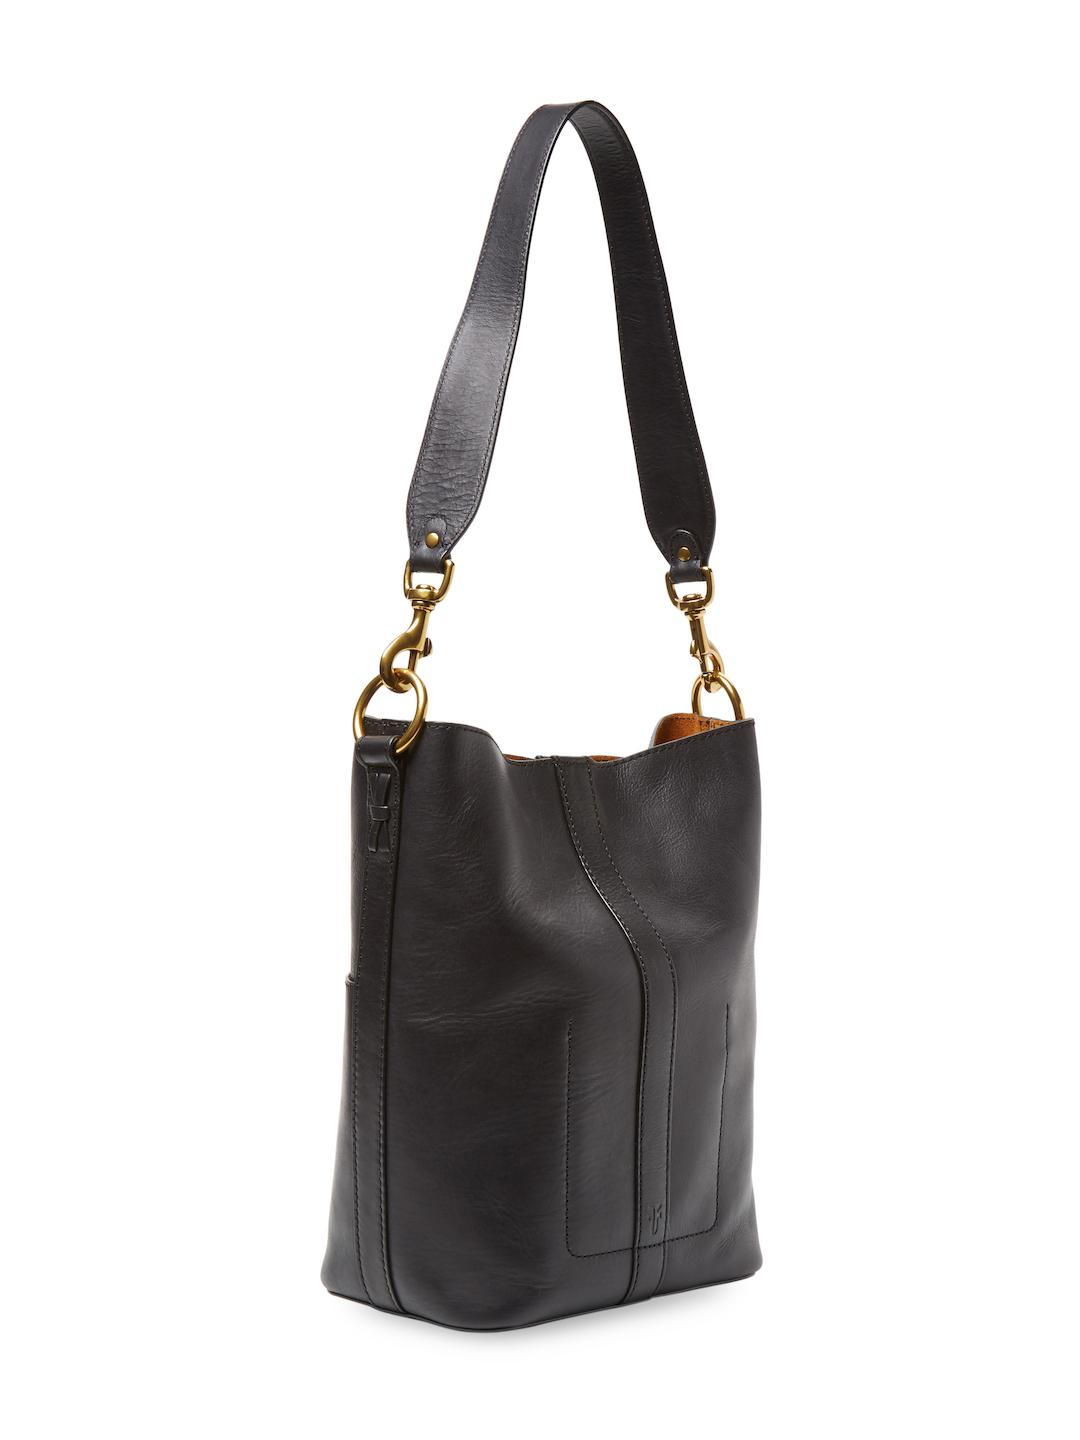 965df630ca45 Lyst - Frye Ilana Leather Bucket Hobo Bag in Black